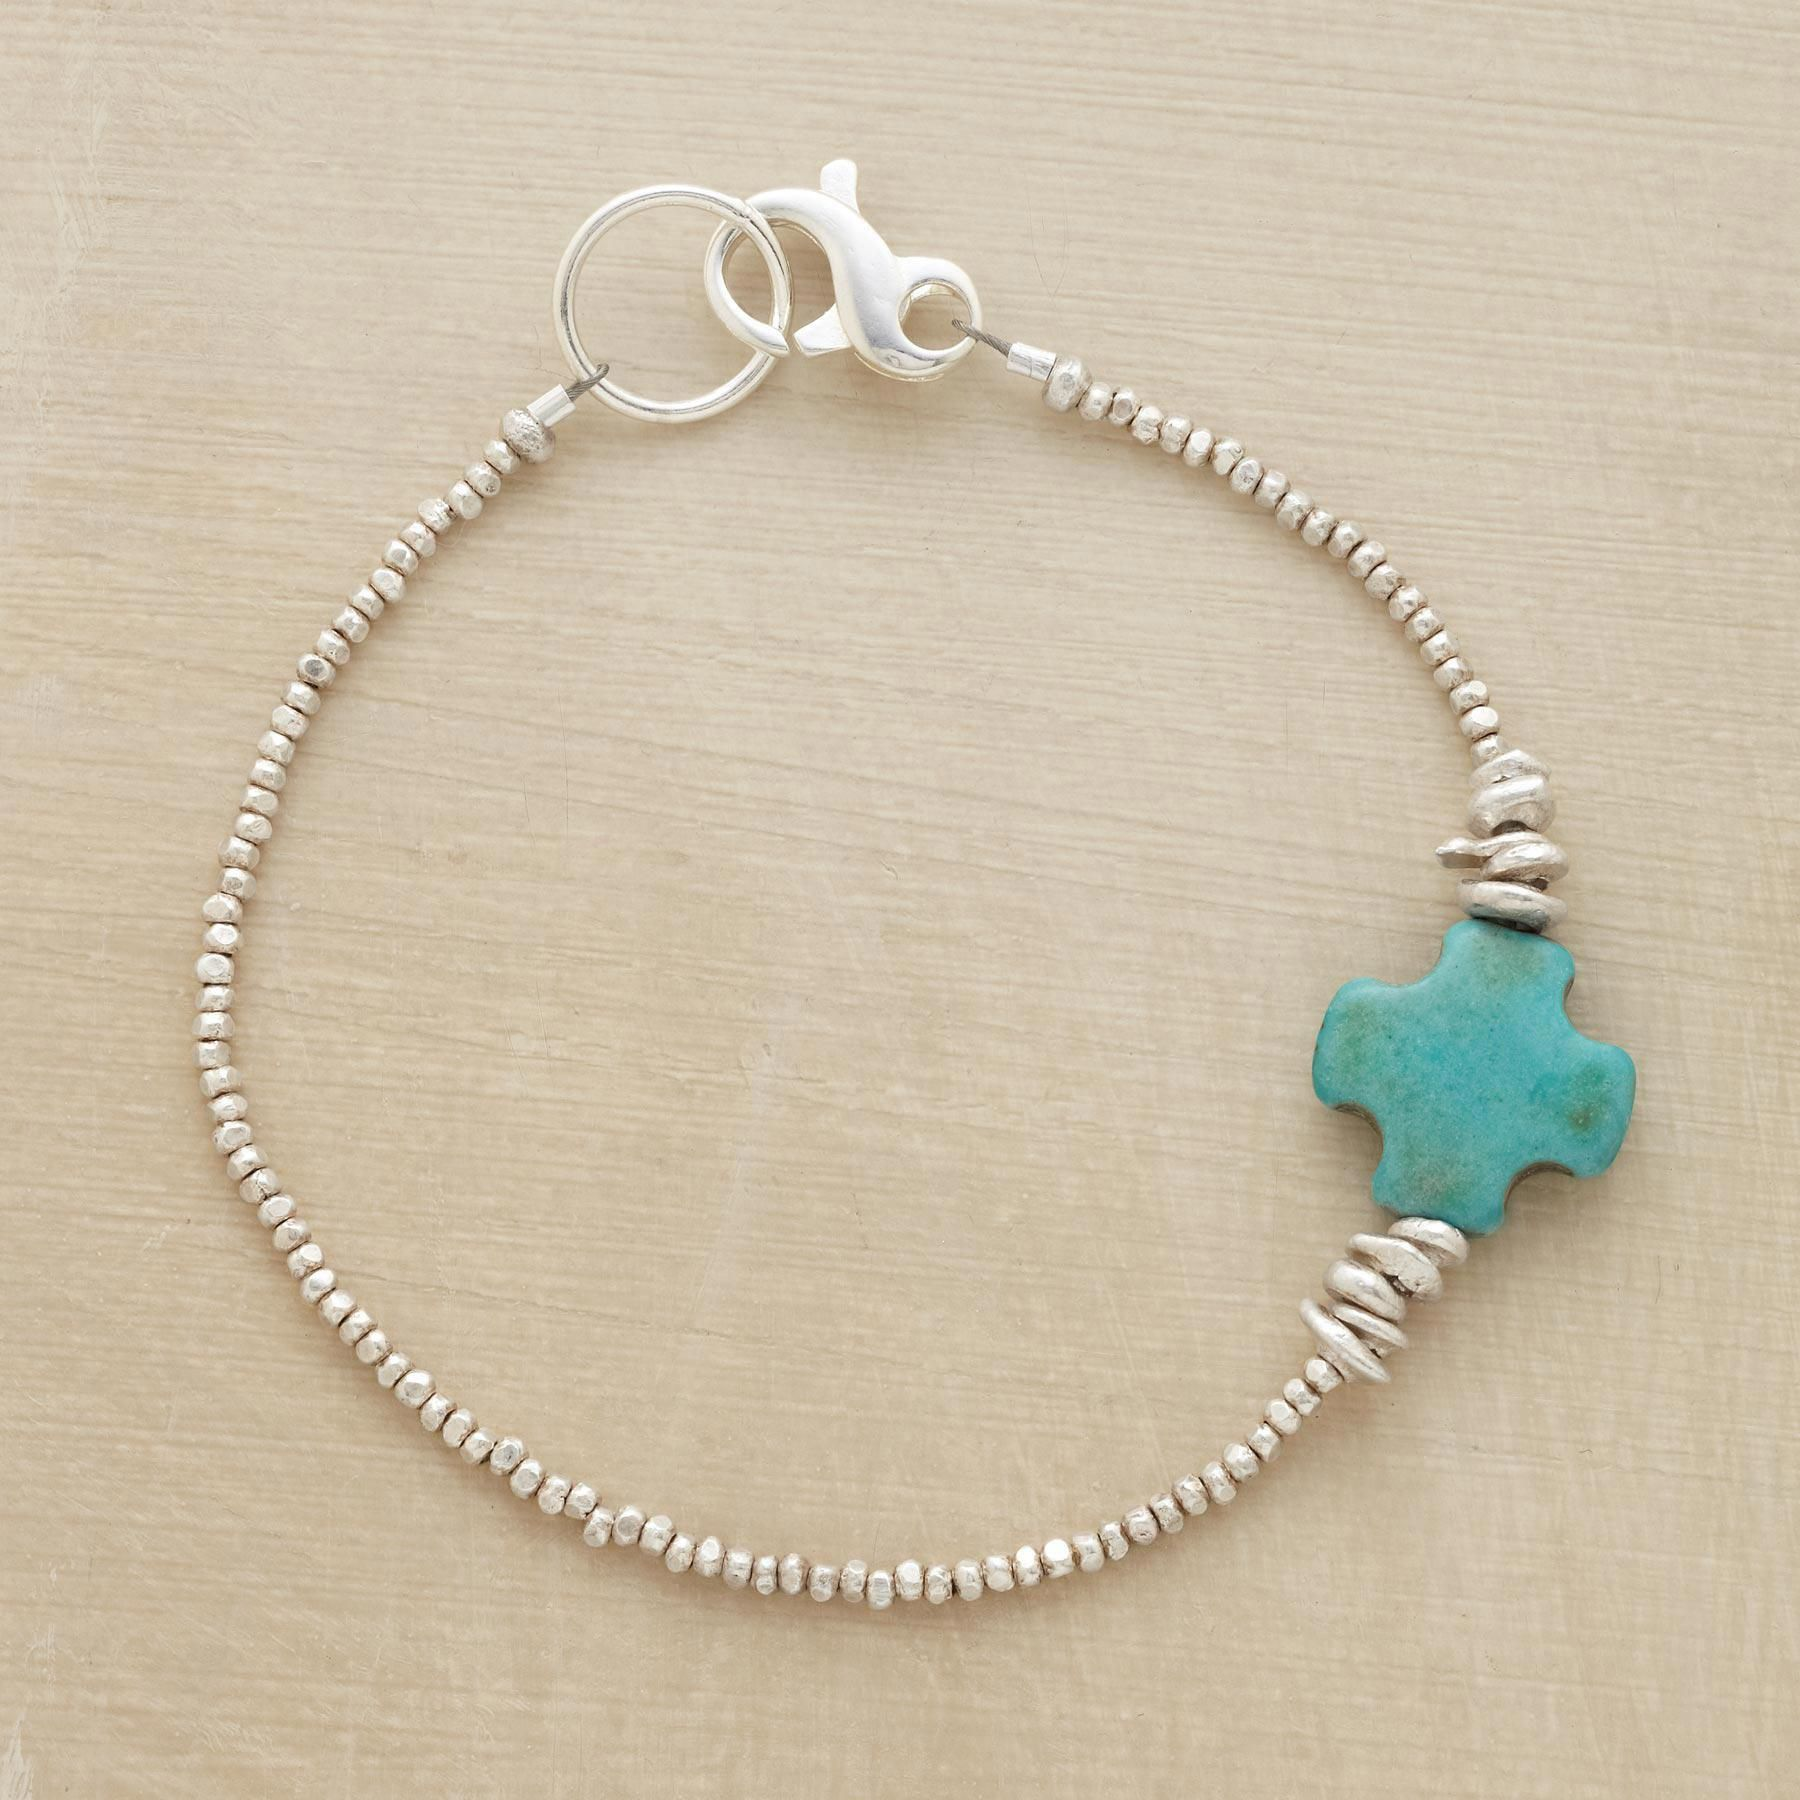 """SOUL CROSS BRACELET�--�The simplest cross carved in sky blue turquoise is a talisman of peace on our bracelet of tiny faceted silver beads. Sterling lobster clasp. Made in USA. Exclusive. Approx. 7-1/2""""L."""